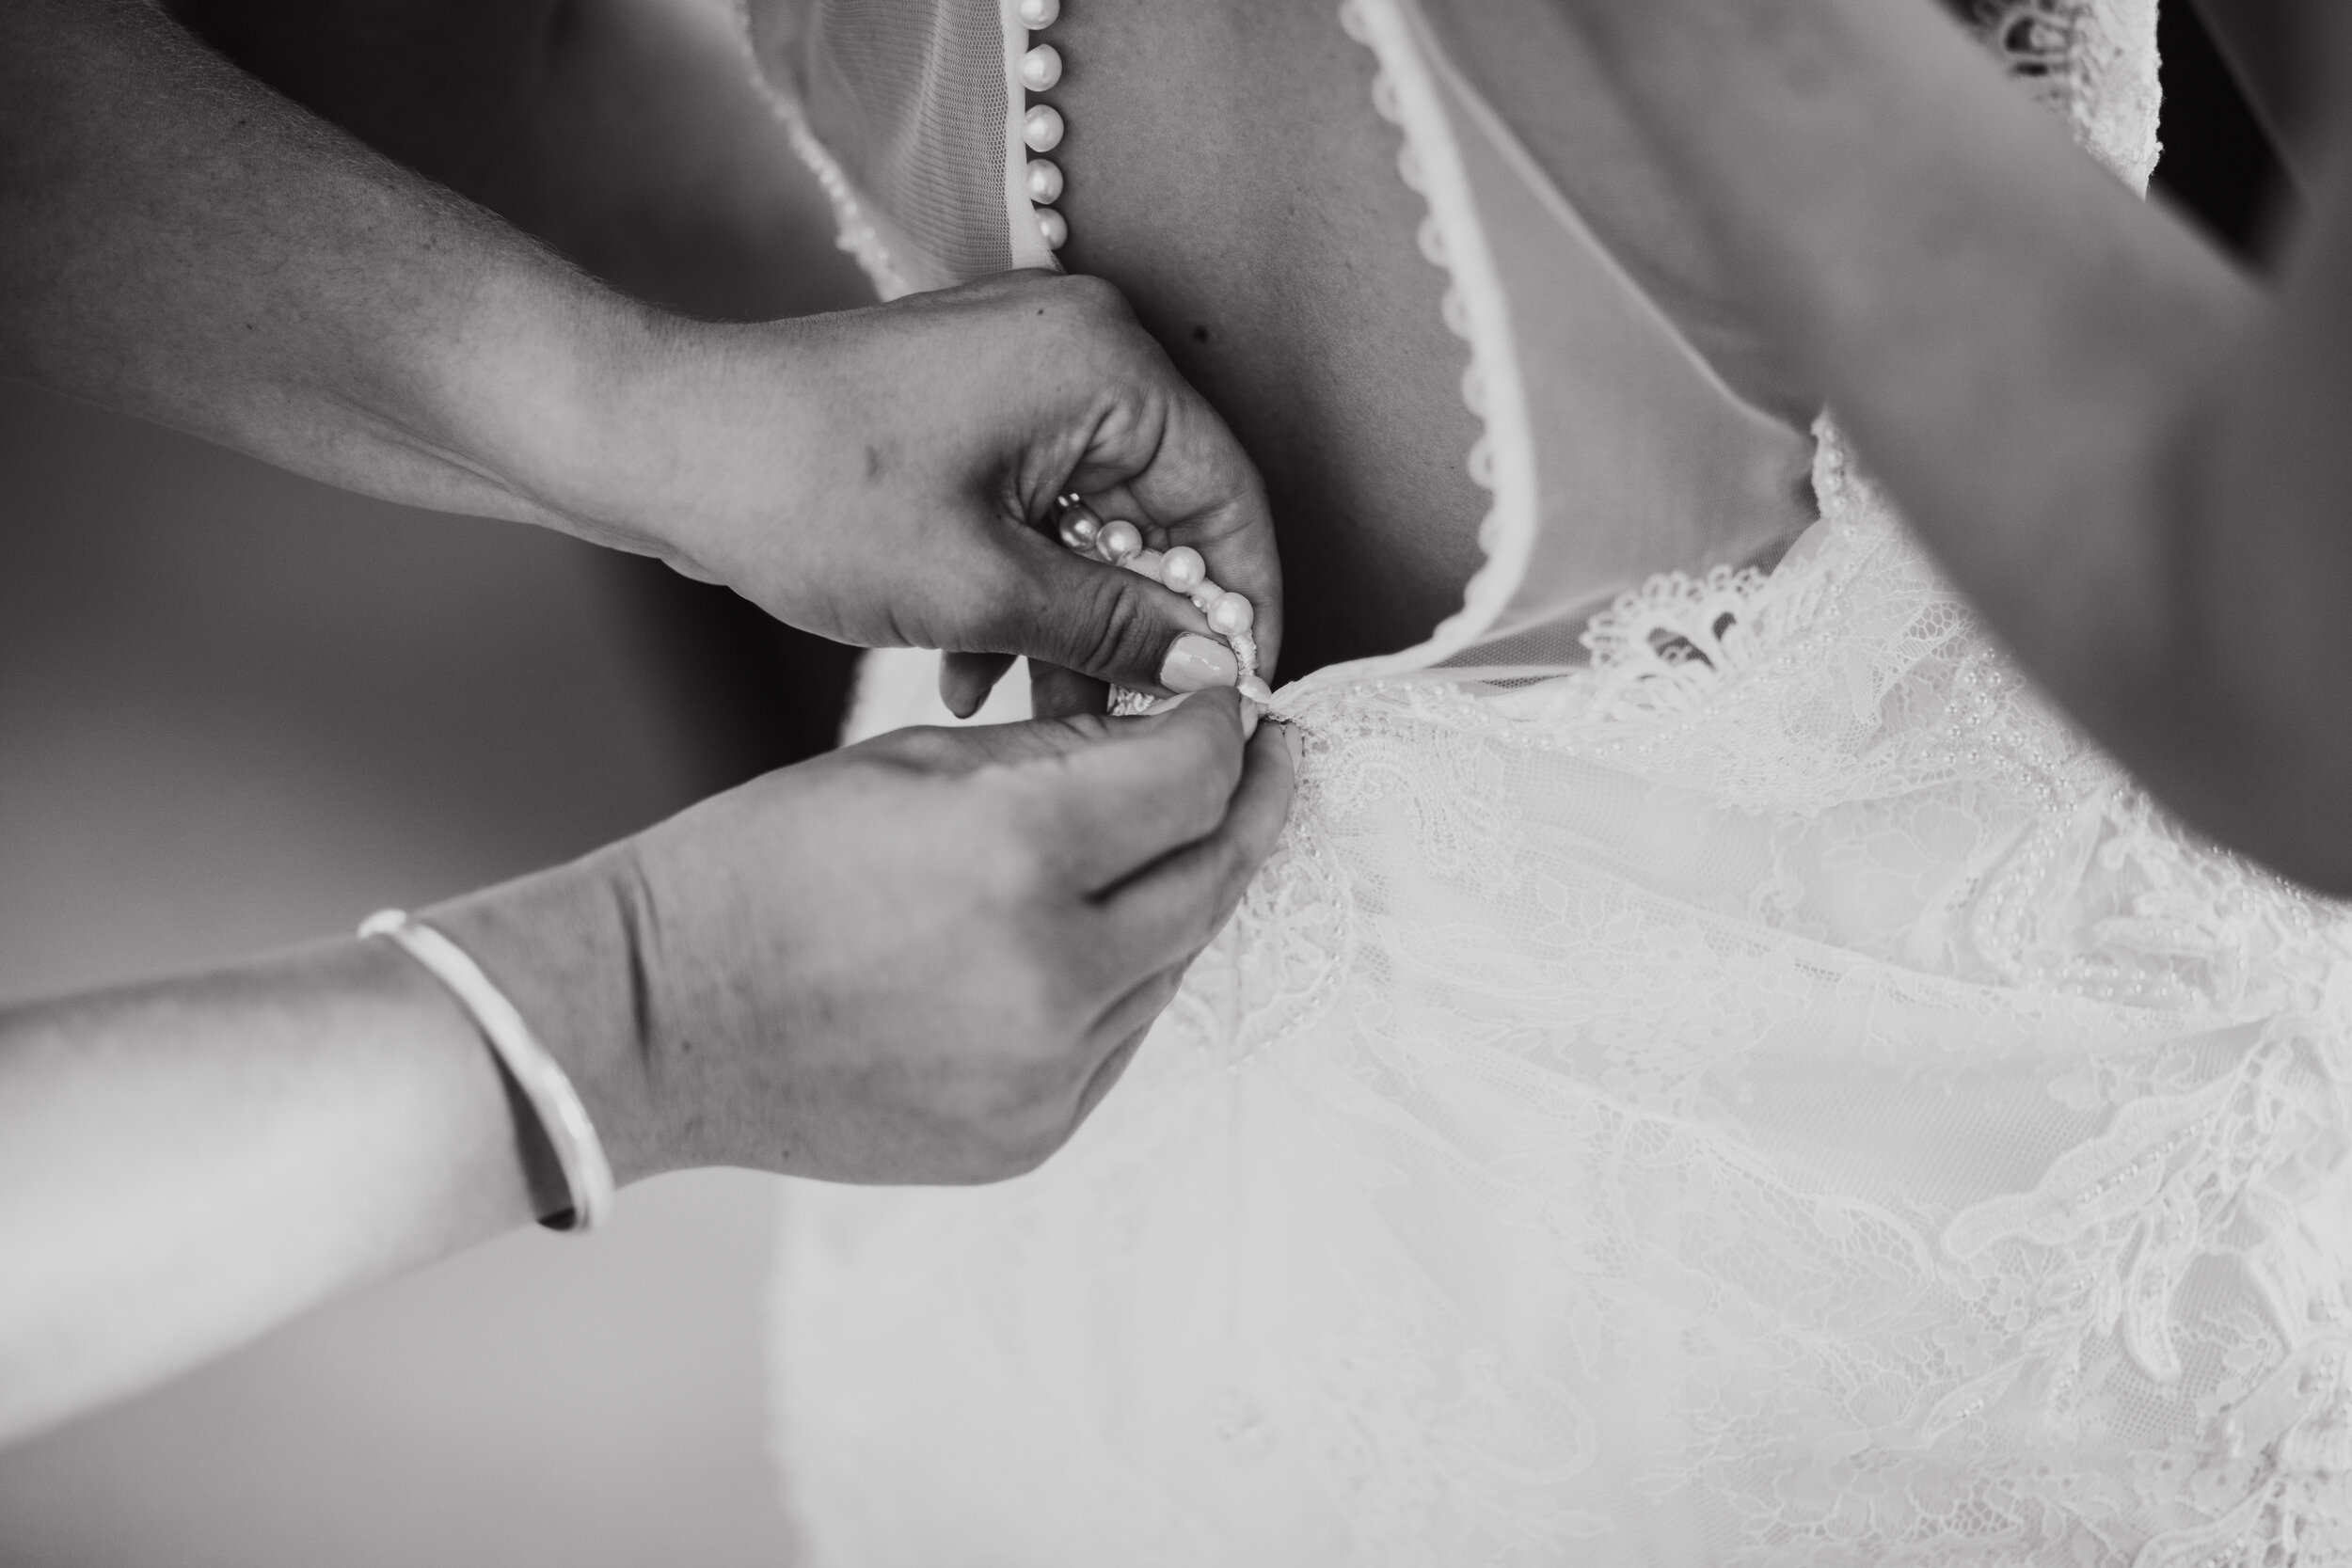 H&RWeddingMonochrome-134.jpg